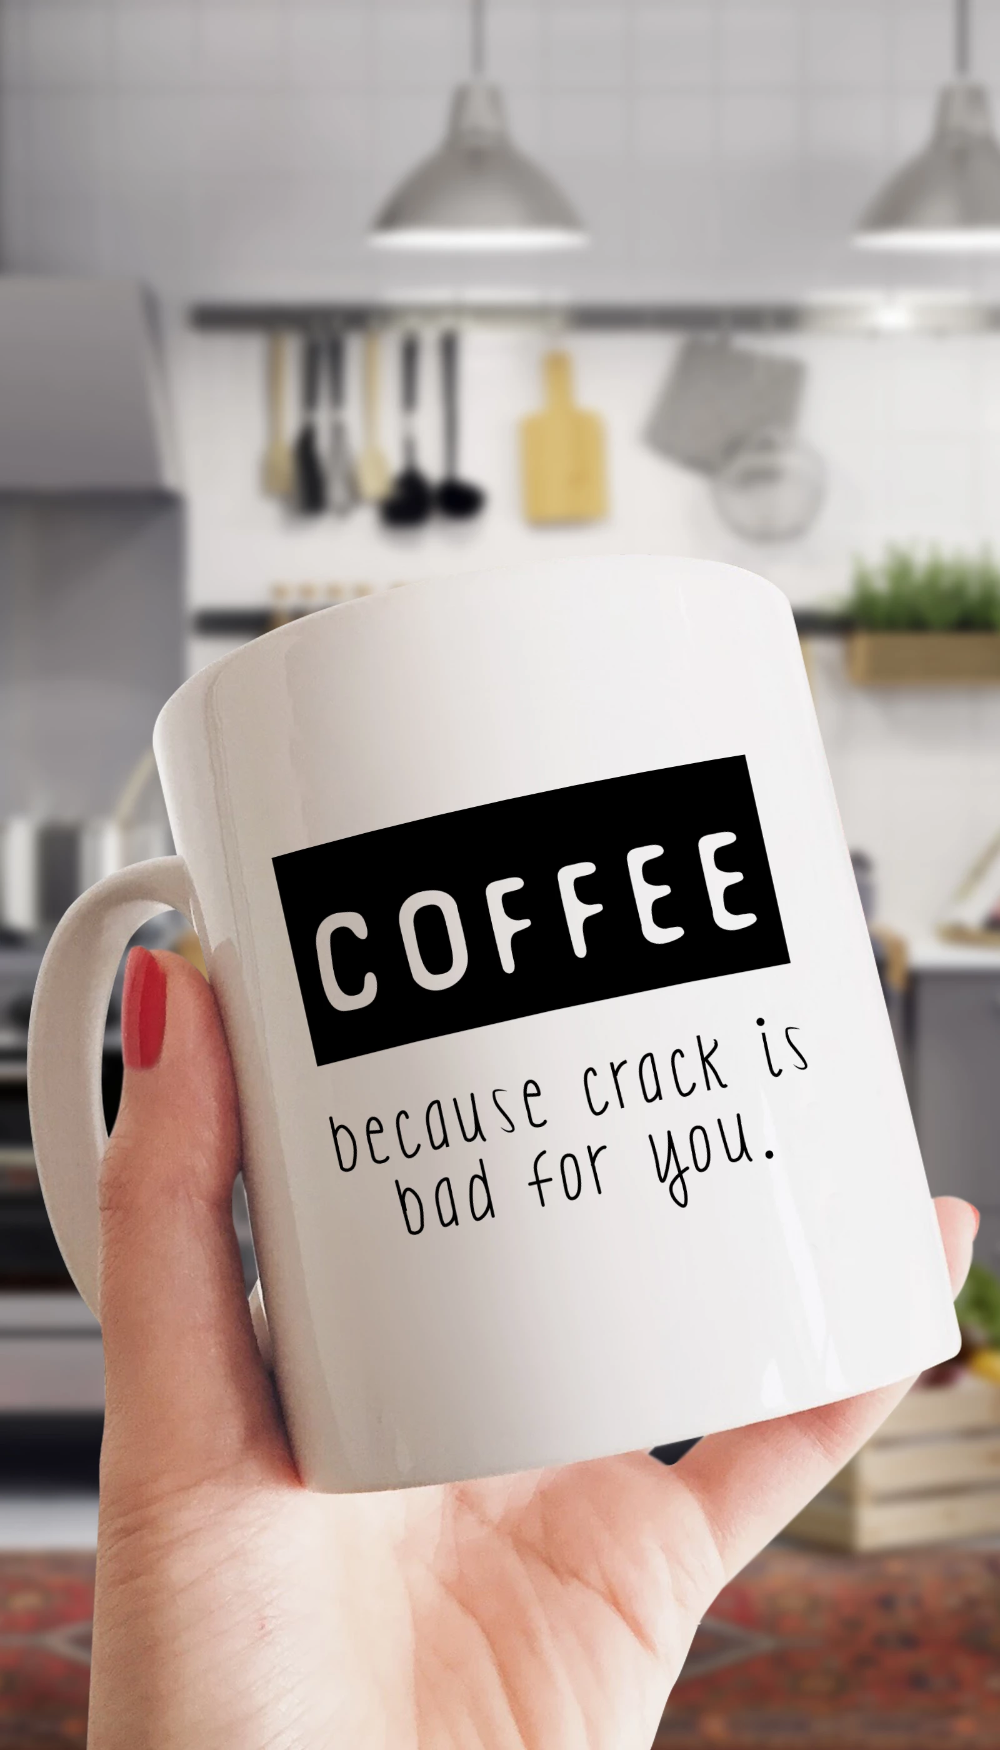 Coffee Because Crack Is Bad For You Funny Office Coffee Mug